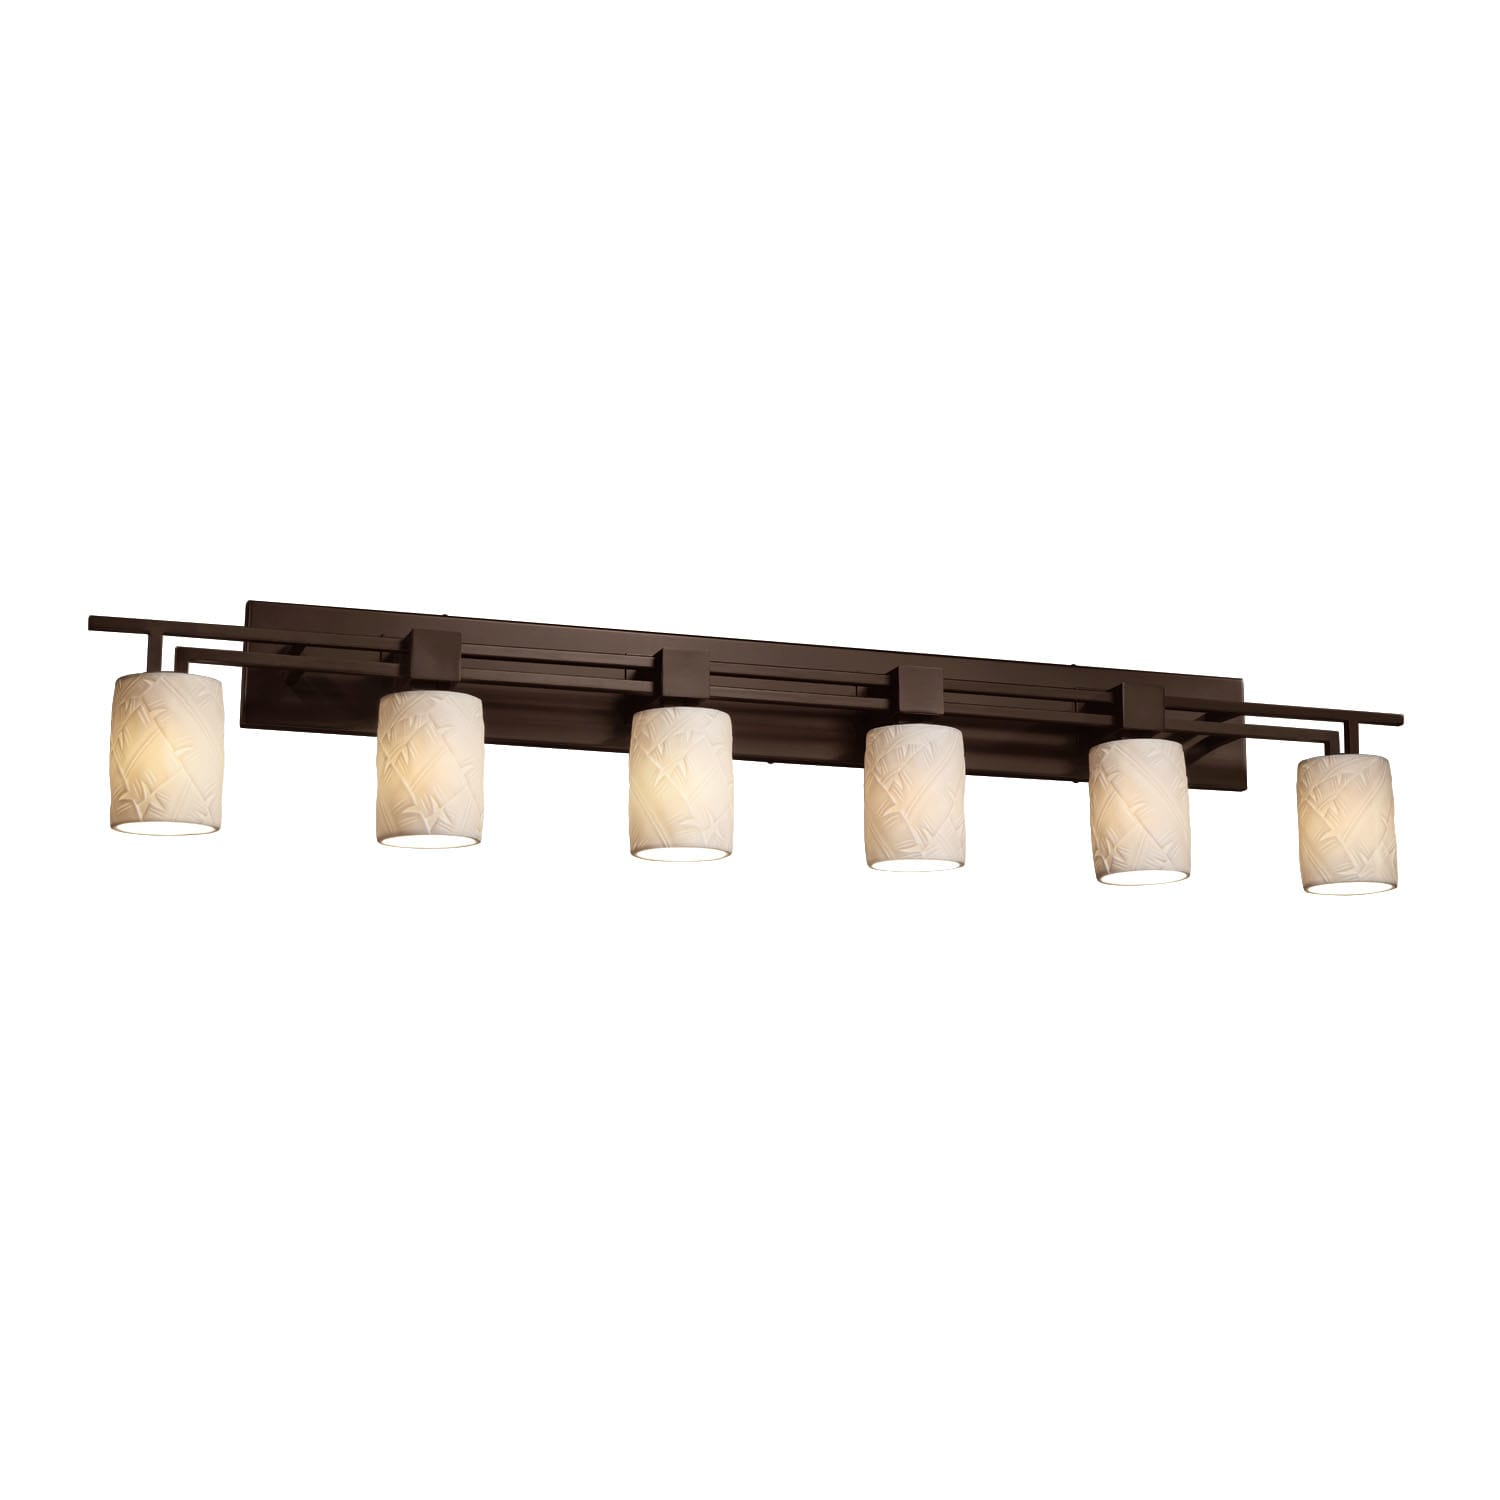 Justice Design Group Por 8706 10 Banl Dbrz Limoges 56 Bathroom Vanity Light